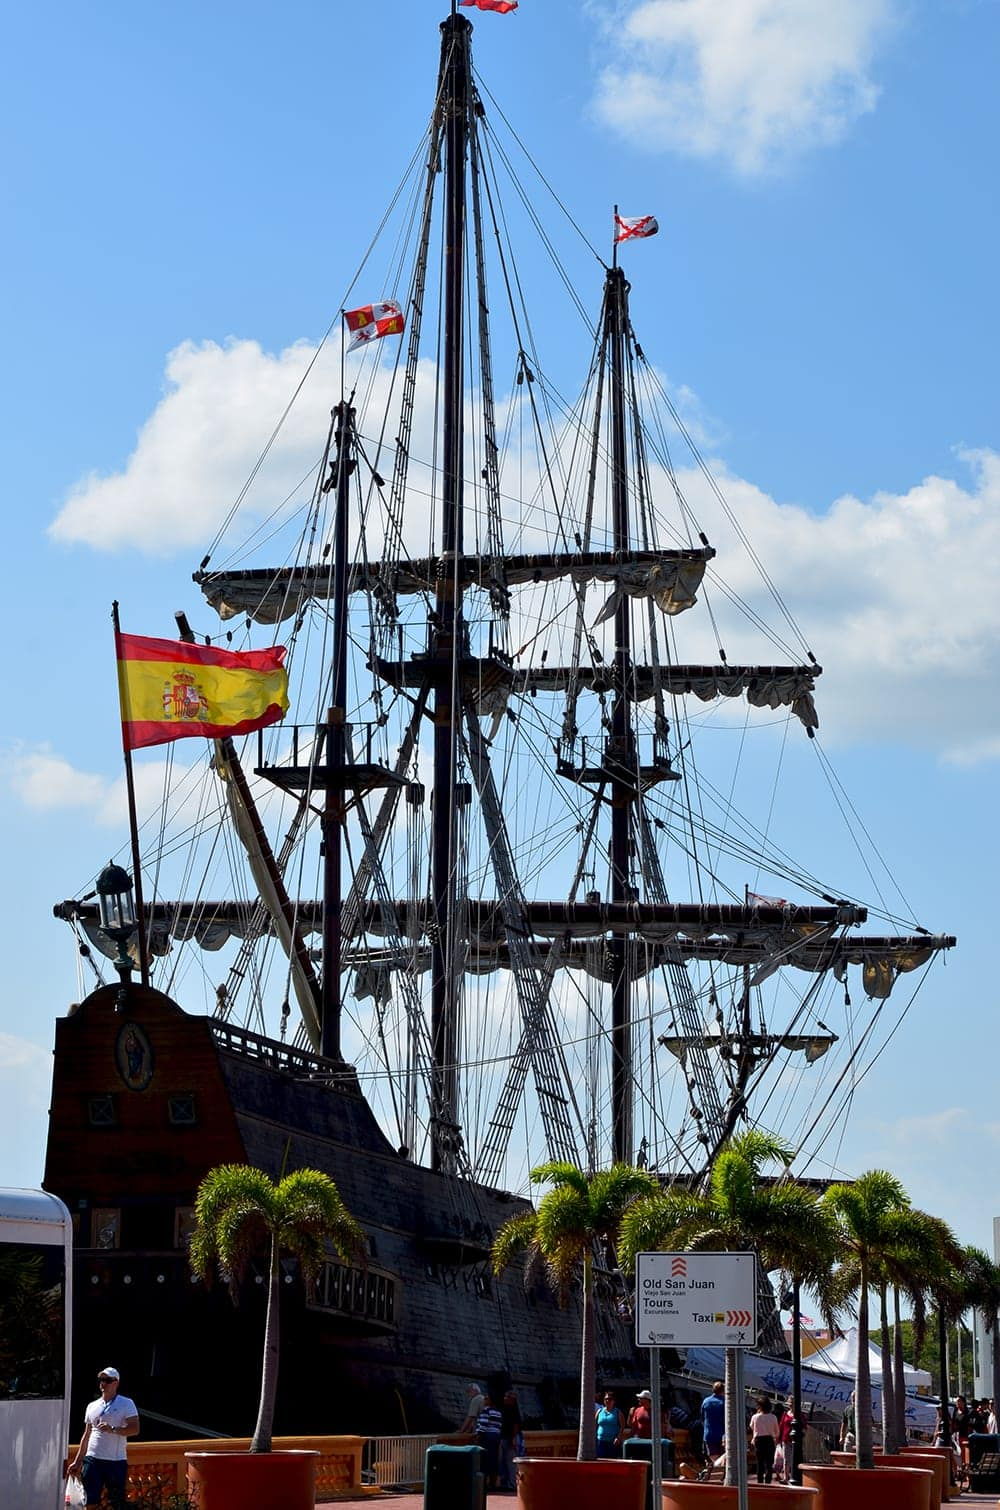 El Galleon Web - Old San Juan and Rum Old Fashioned